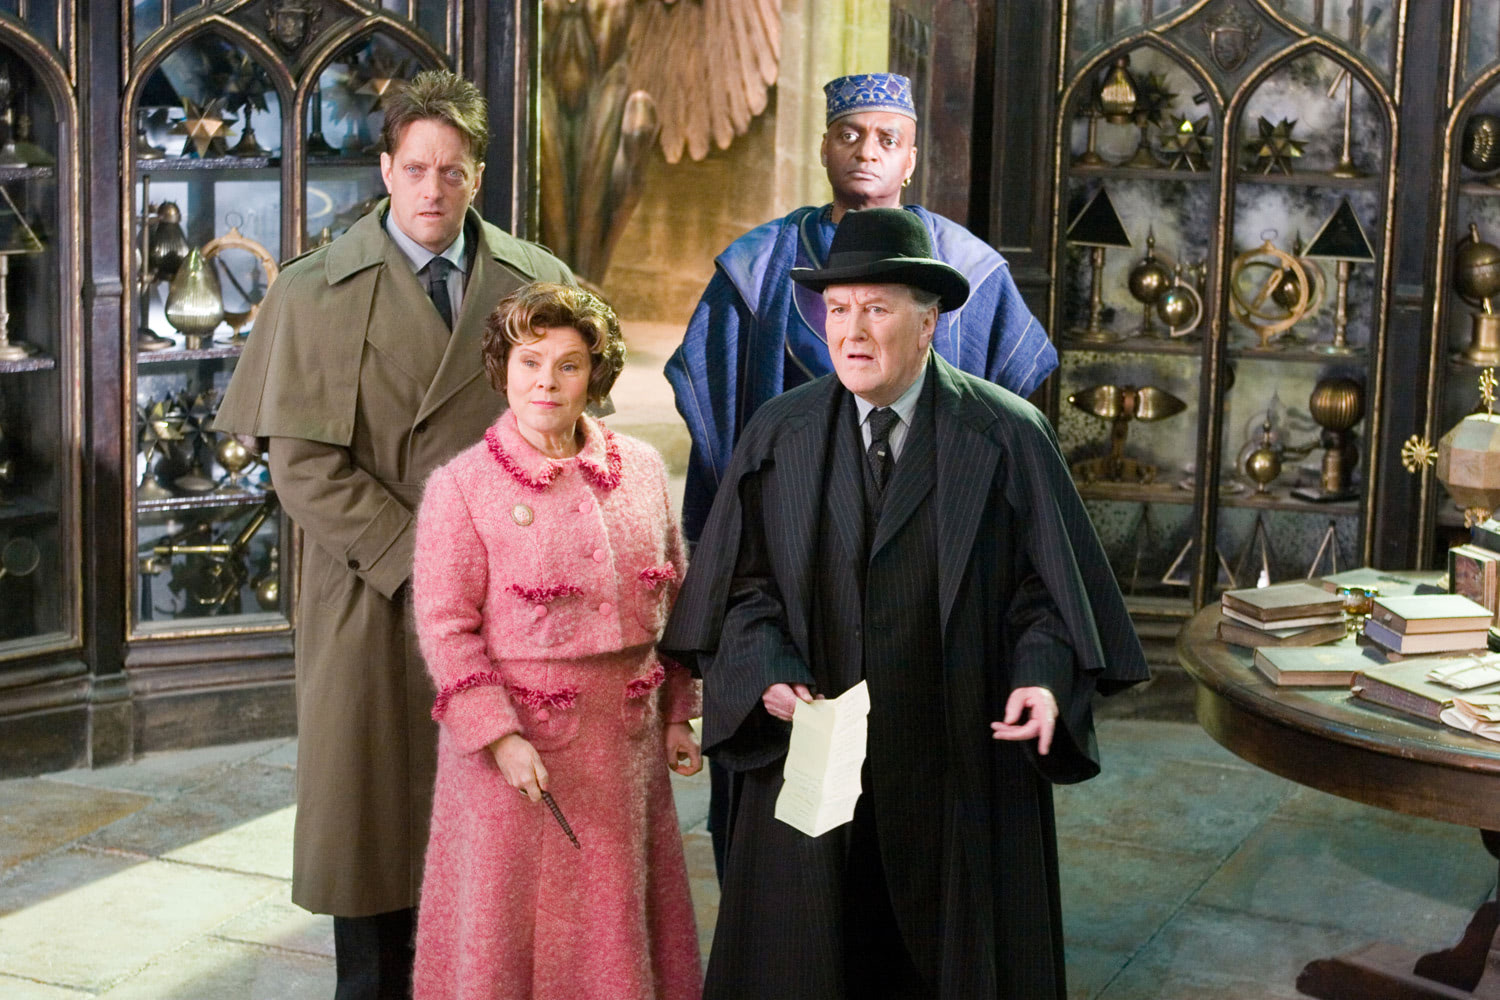 Fudge arrive to take Dumbledore